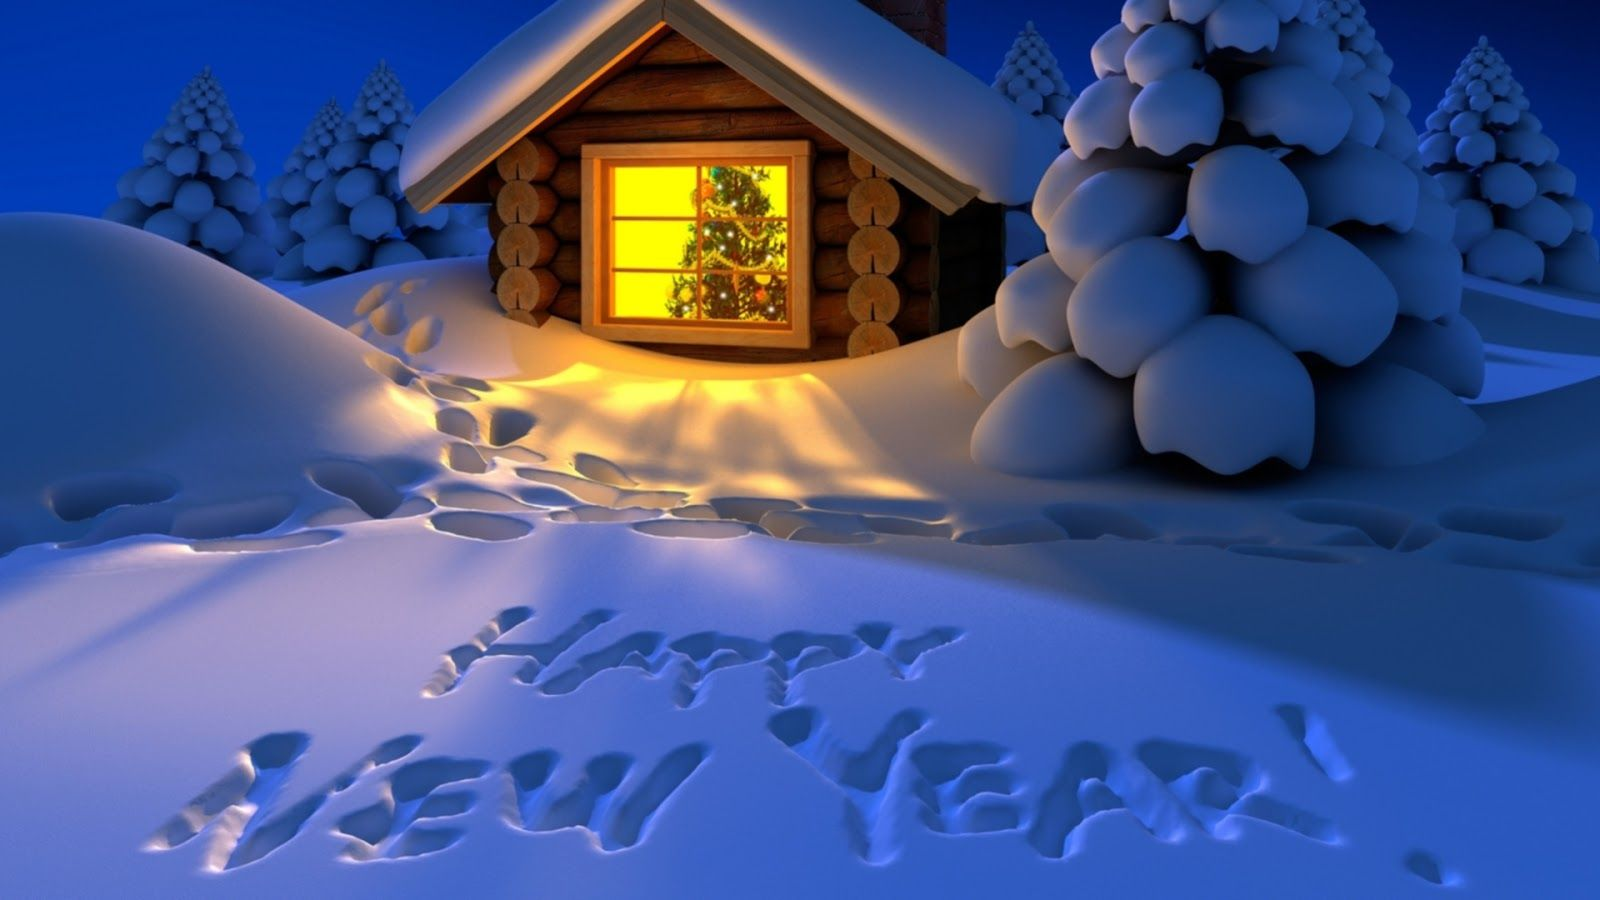 Wallpaper download new year 2016 - Happy New Year 2016 Free Download Hindi Messages And Wallpapers